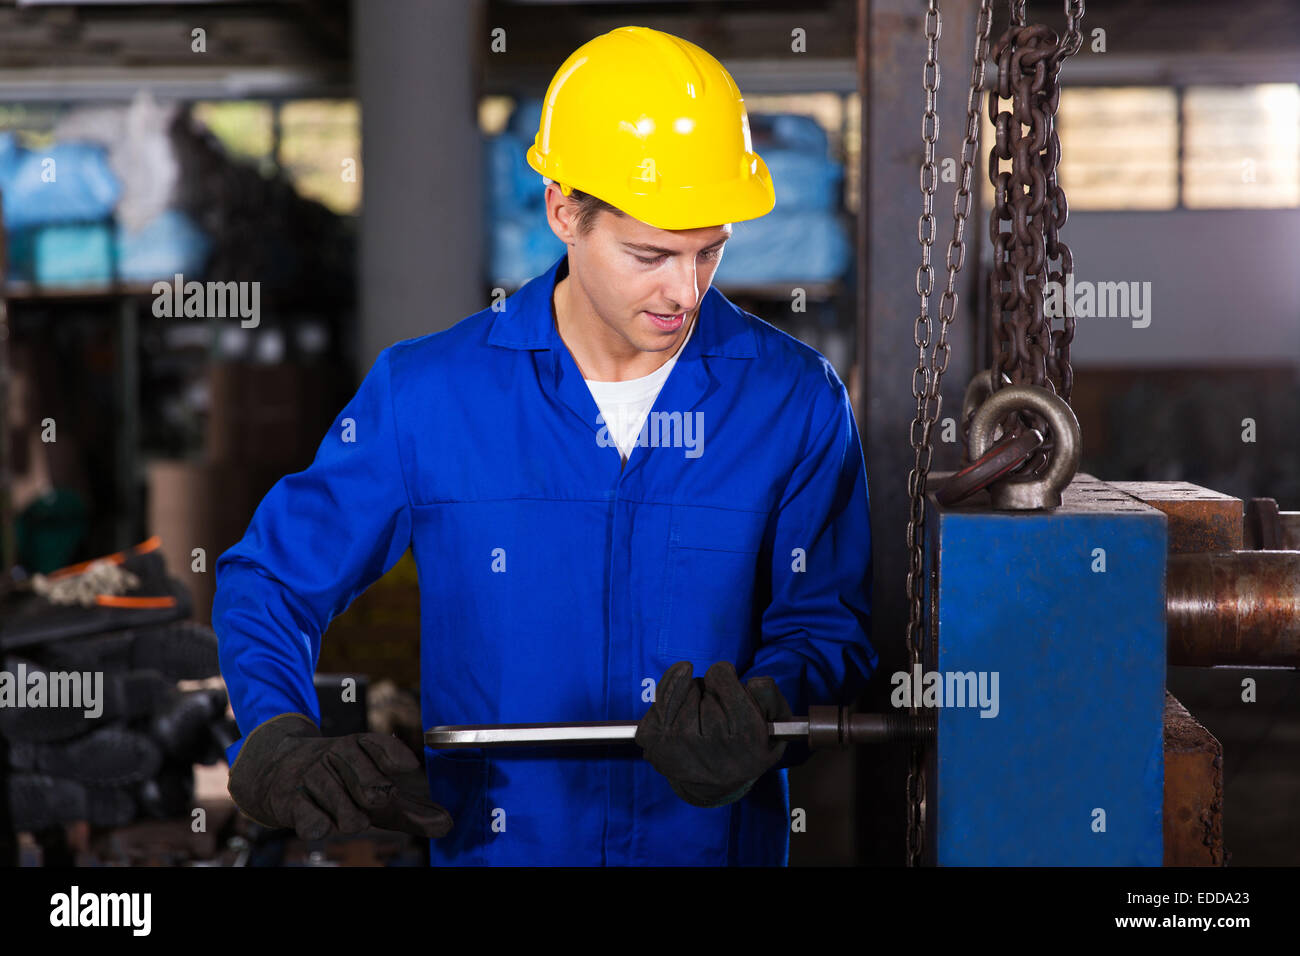 skilled manual worker working in workshop - Stock Image